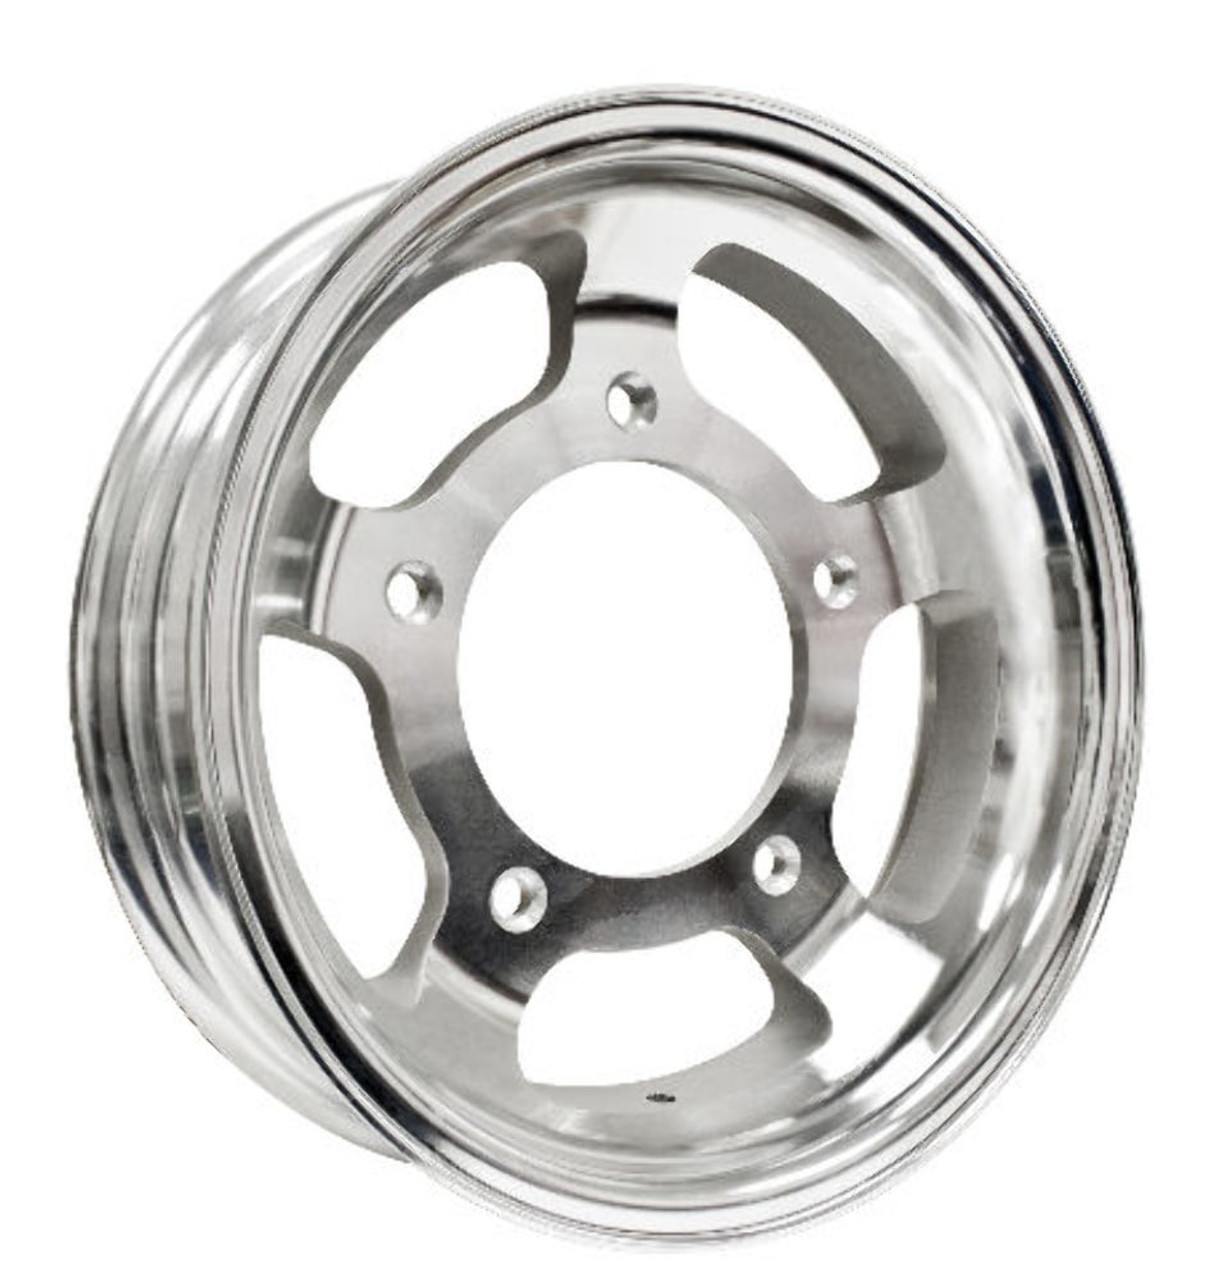 """15 X 4"""" Forged Aluminum Rim, 5 On 205mm, 1-3/4"""" Backspacing, Compatible with VW Dune Buggy"""